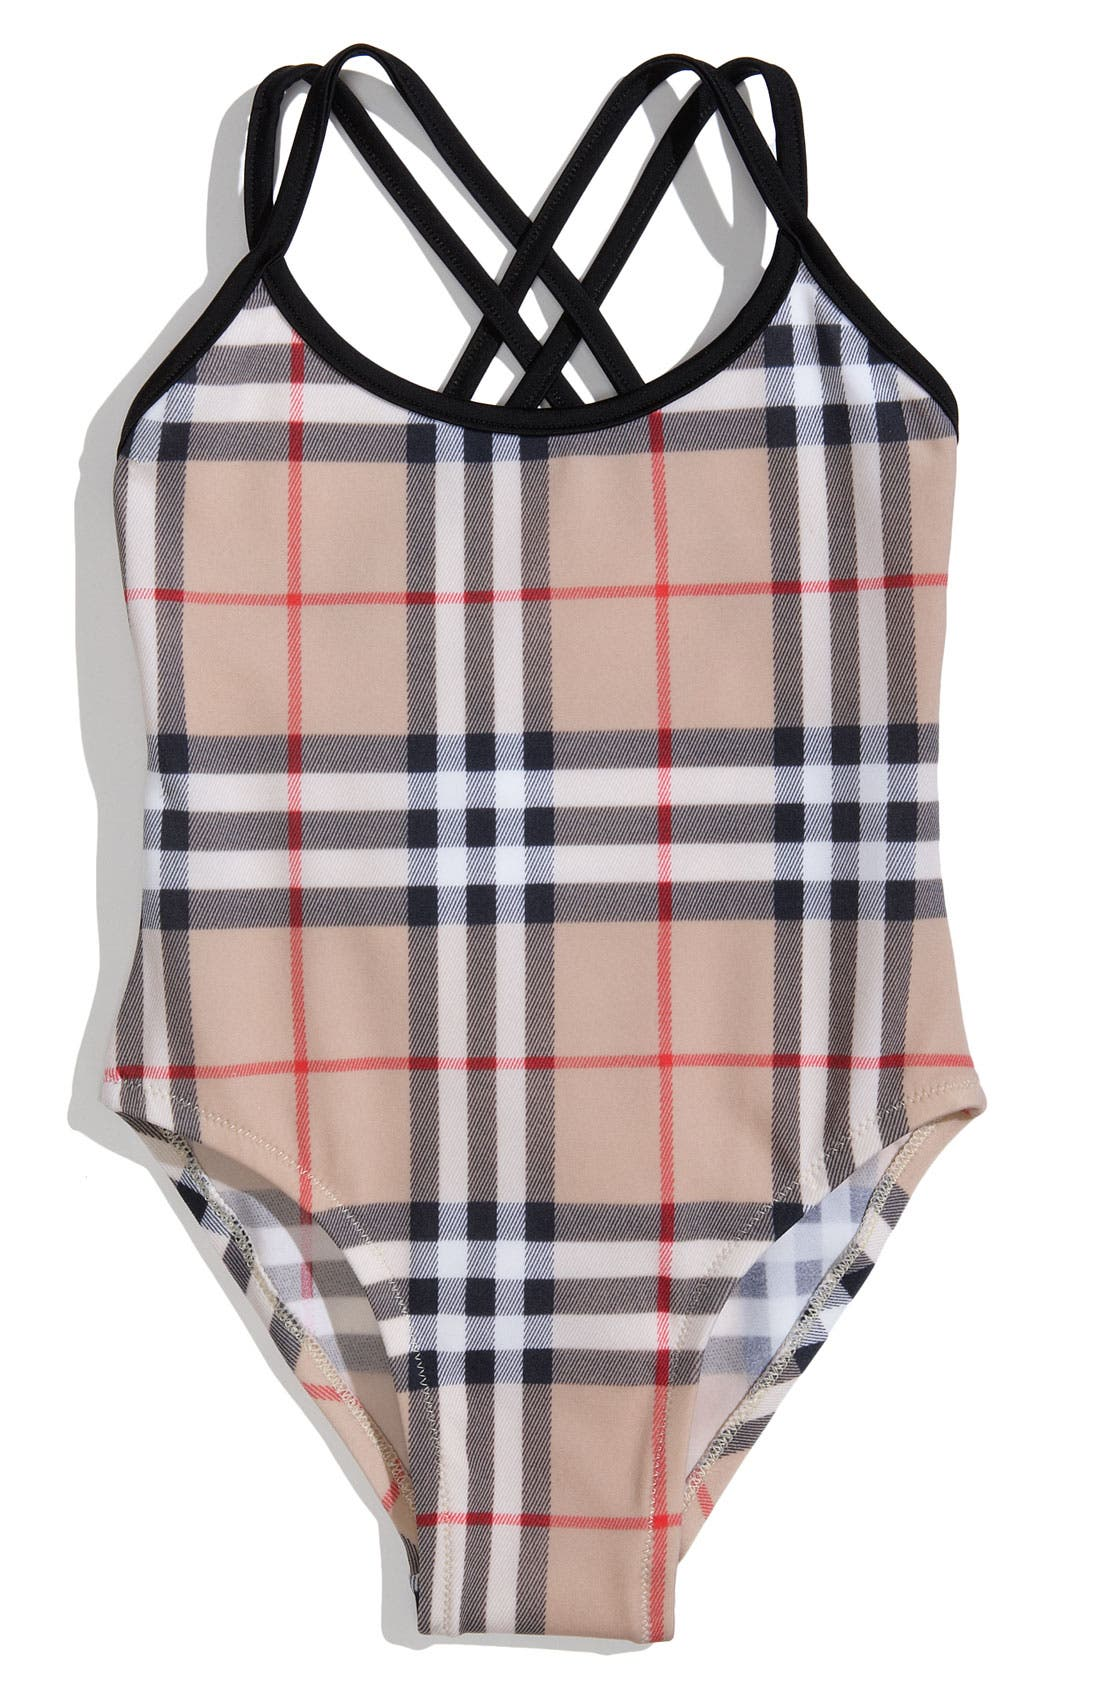 Alternate Image 1 Selected - Burberry One Piece Swimsuit (Toddler)